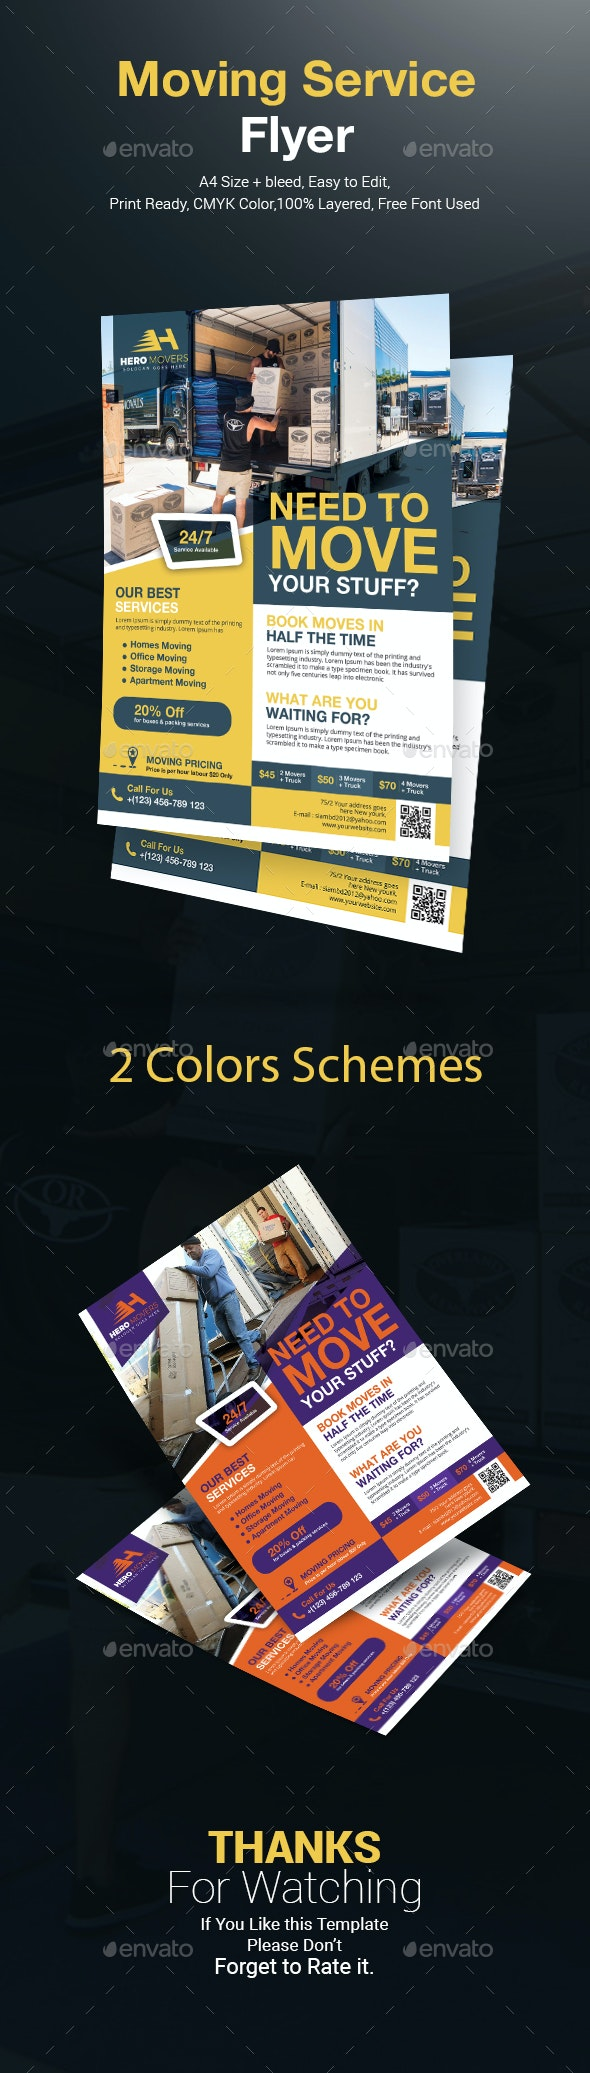 Moving Services Flyer Templates - Corporate Flyers